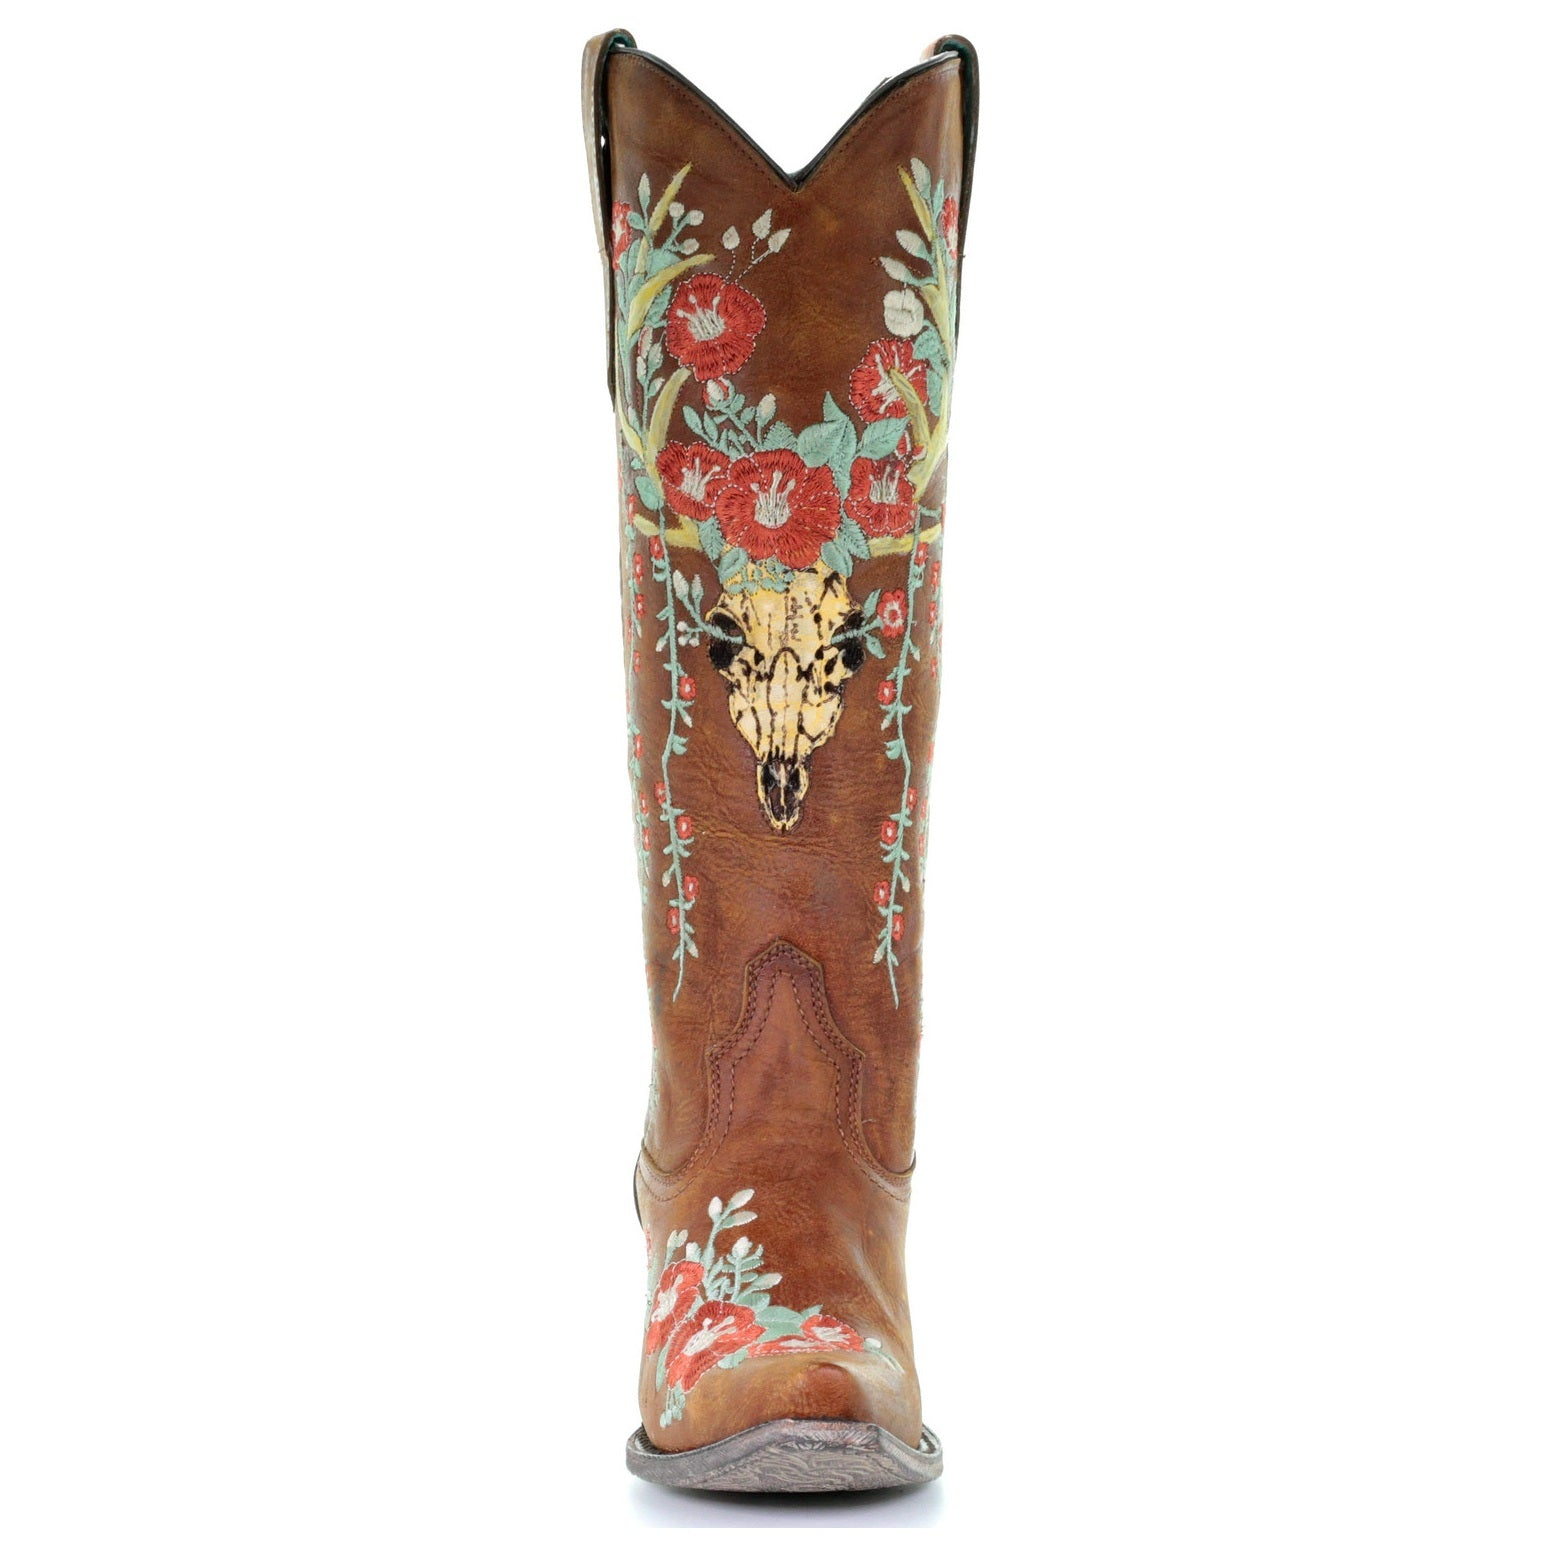 1c5920ef6 Corral Ladies Juliet Tan Deer Skull Floral Embroidery Boots A3620